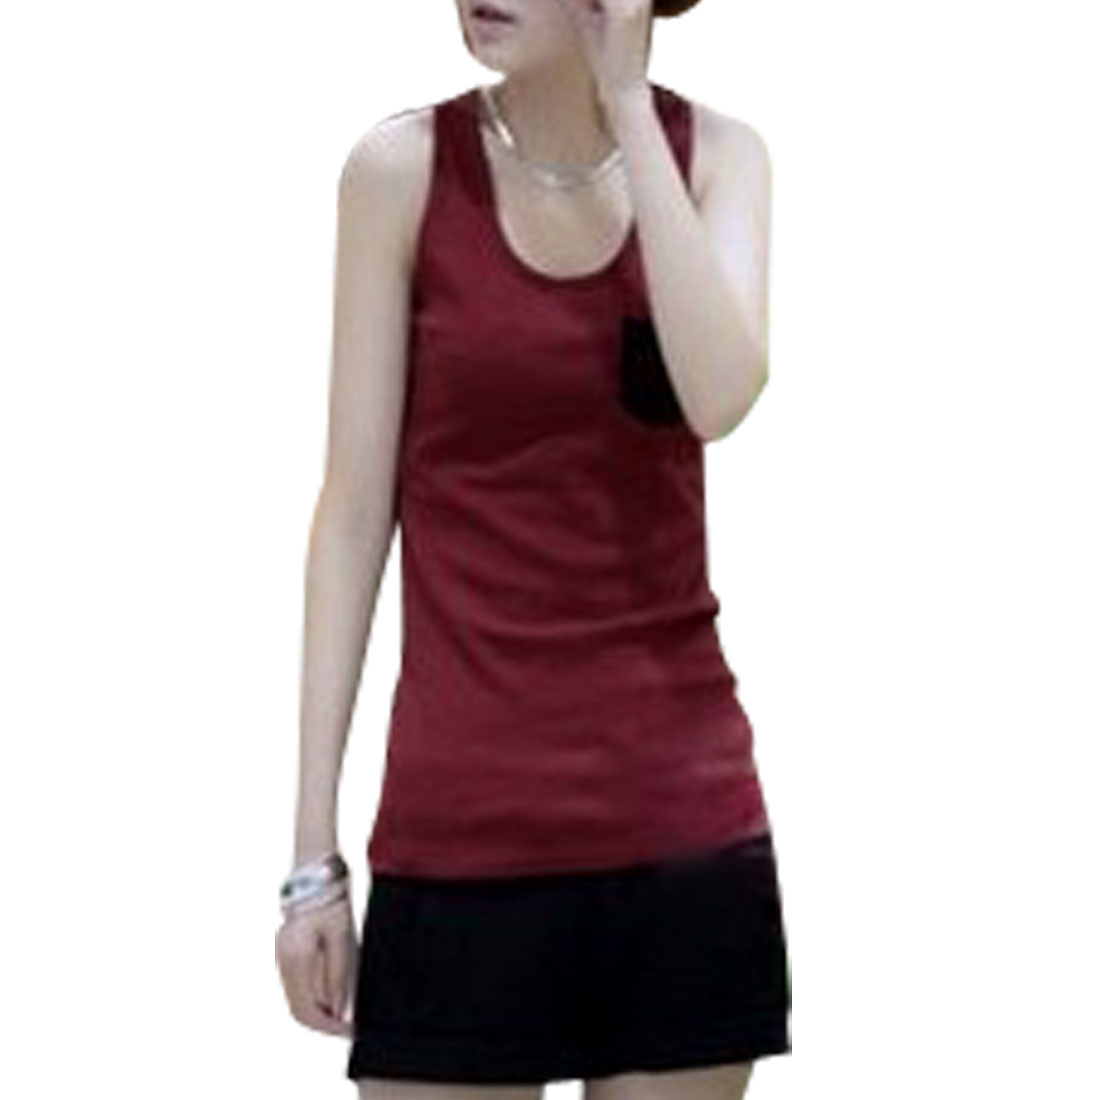 Round Neck Sleeveless Racerback Tank Top Dark Red Black XS for Women